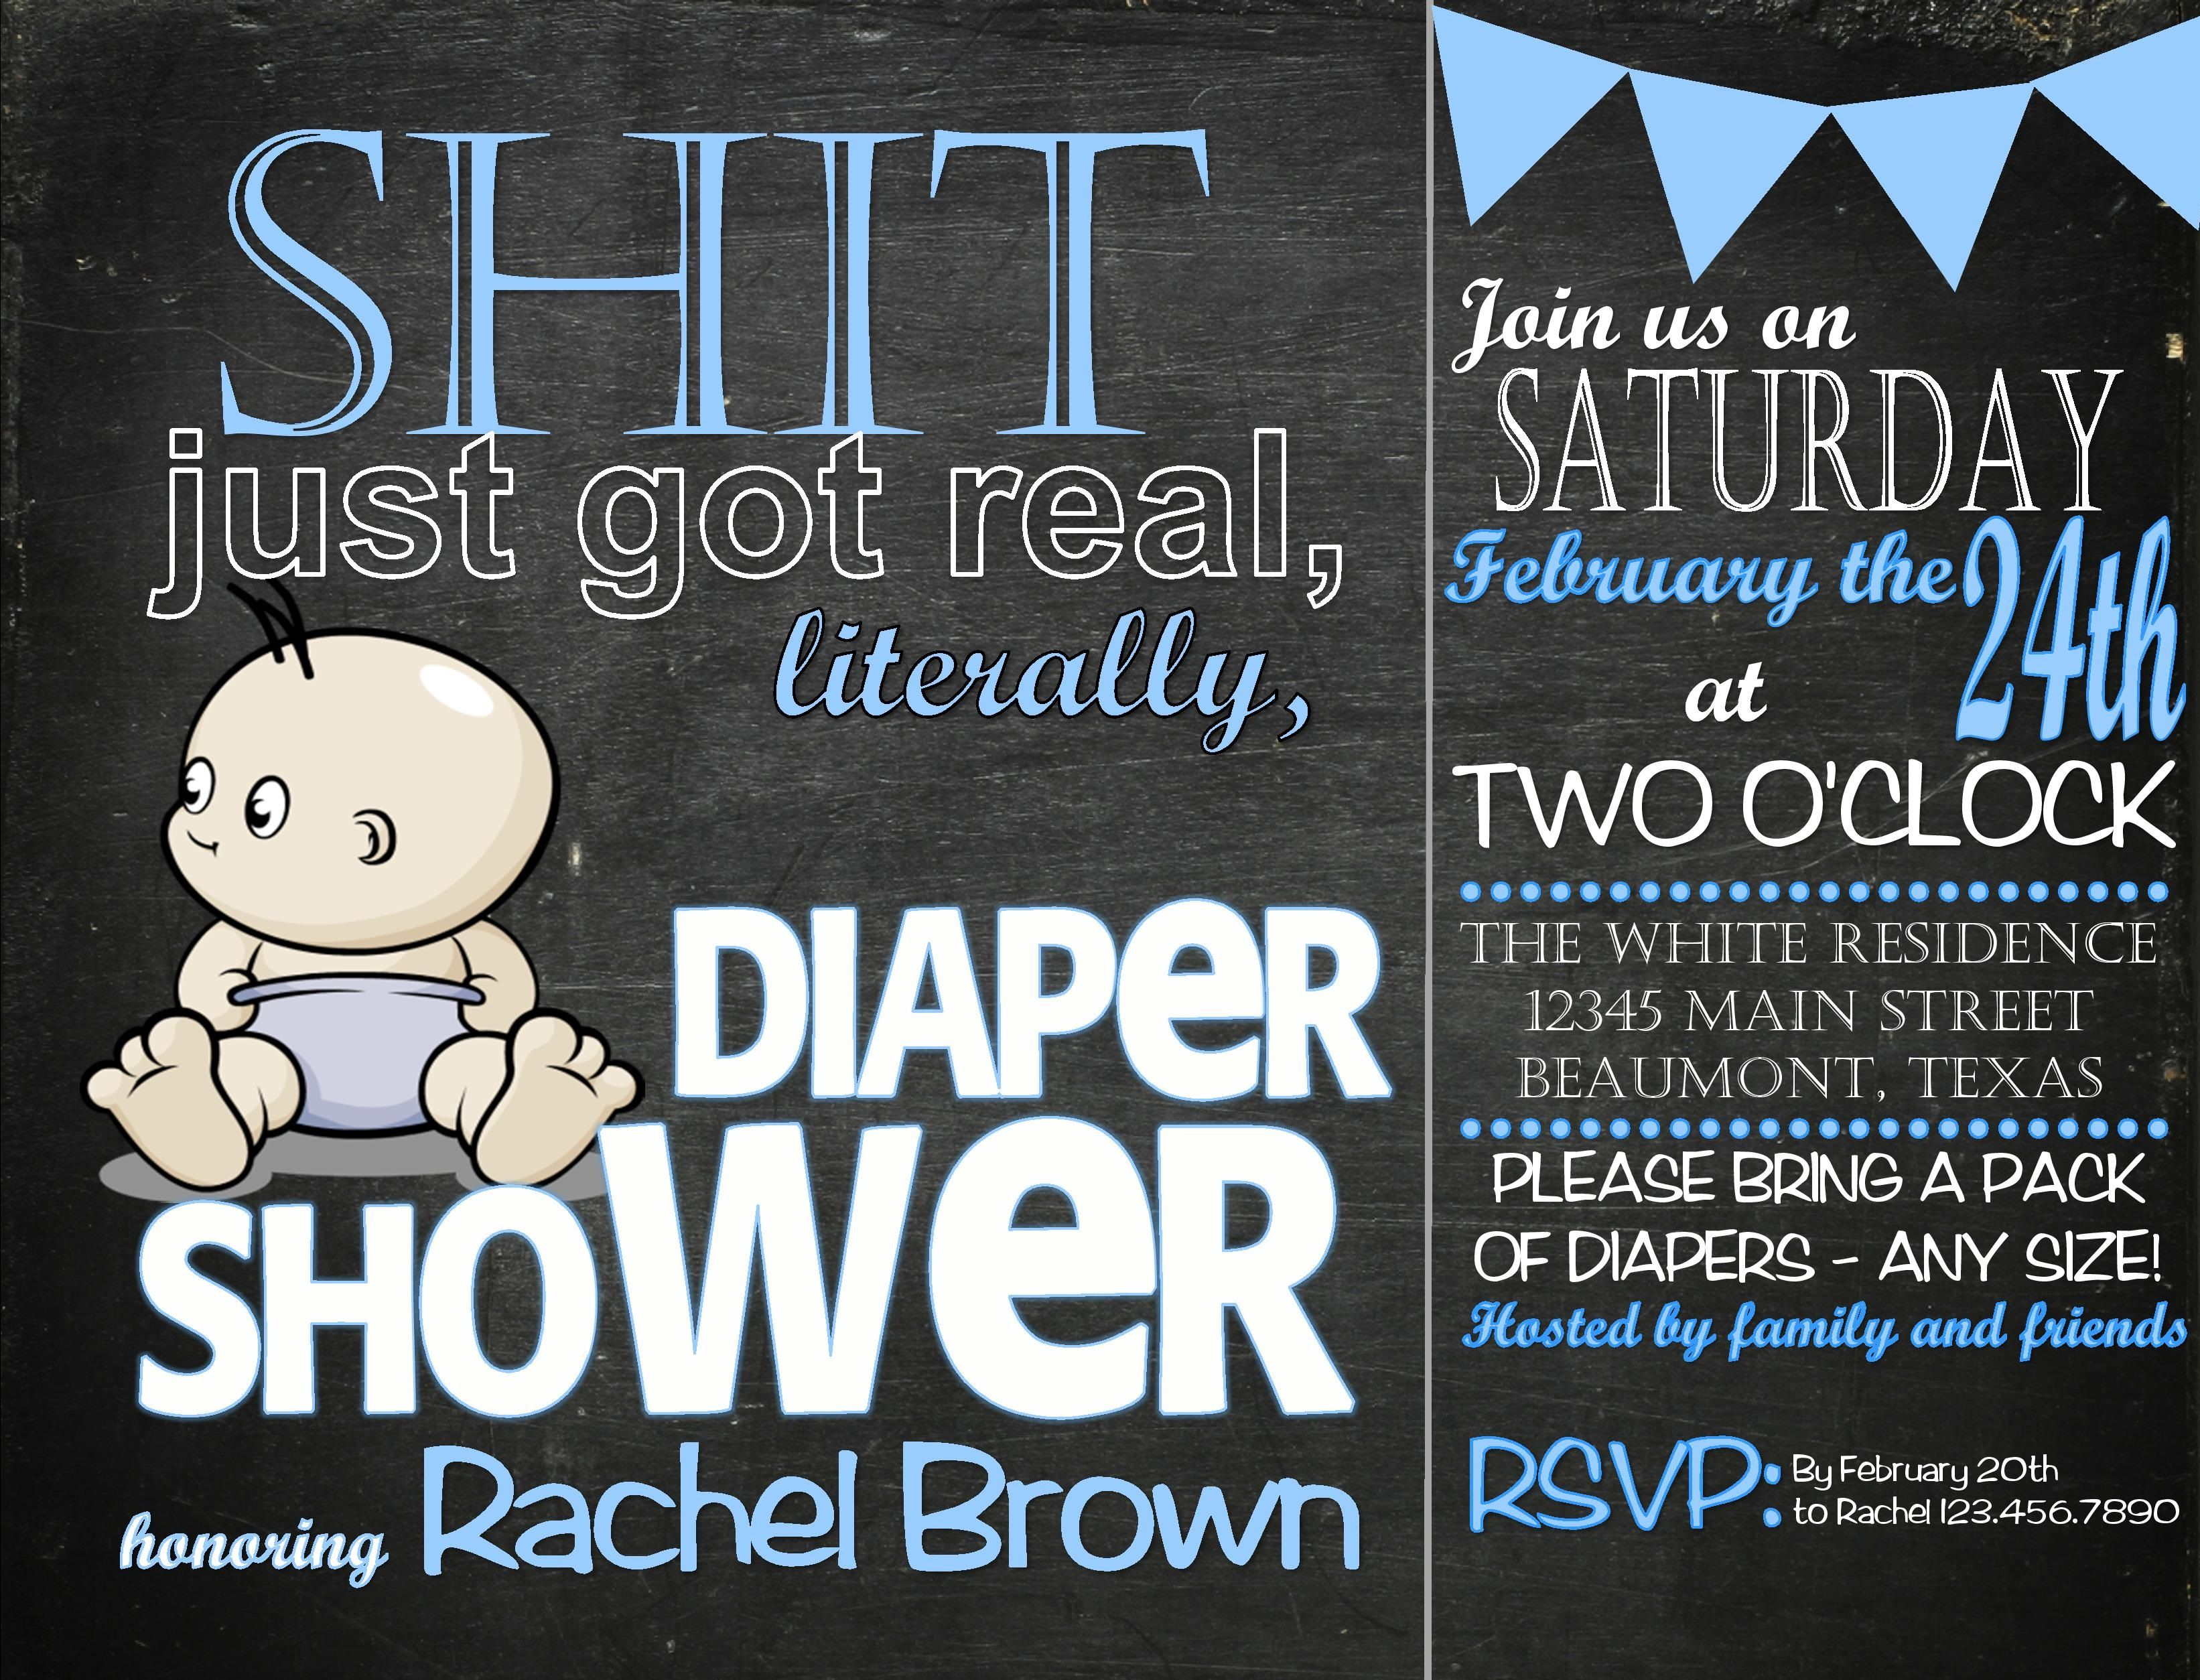 baby shower invitation wording for bringing diapers%0A  u    SHIT JUST GOT REAL u     BABY BOY SHOWER INVITATION https   www